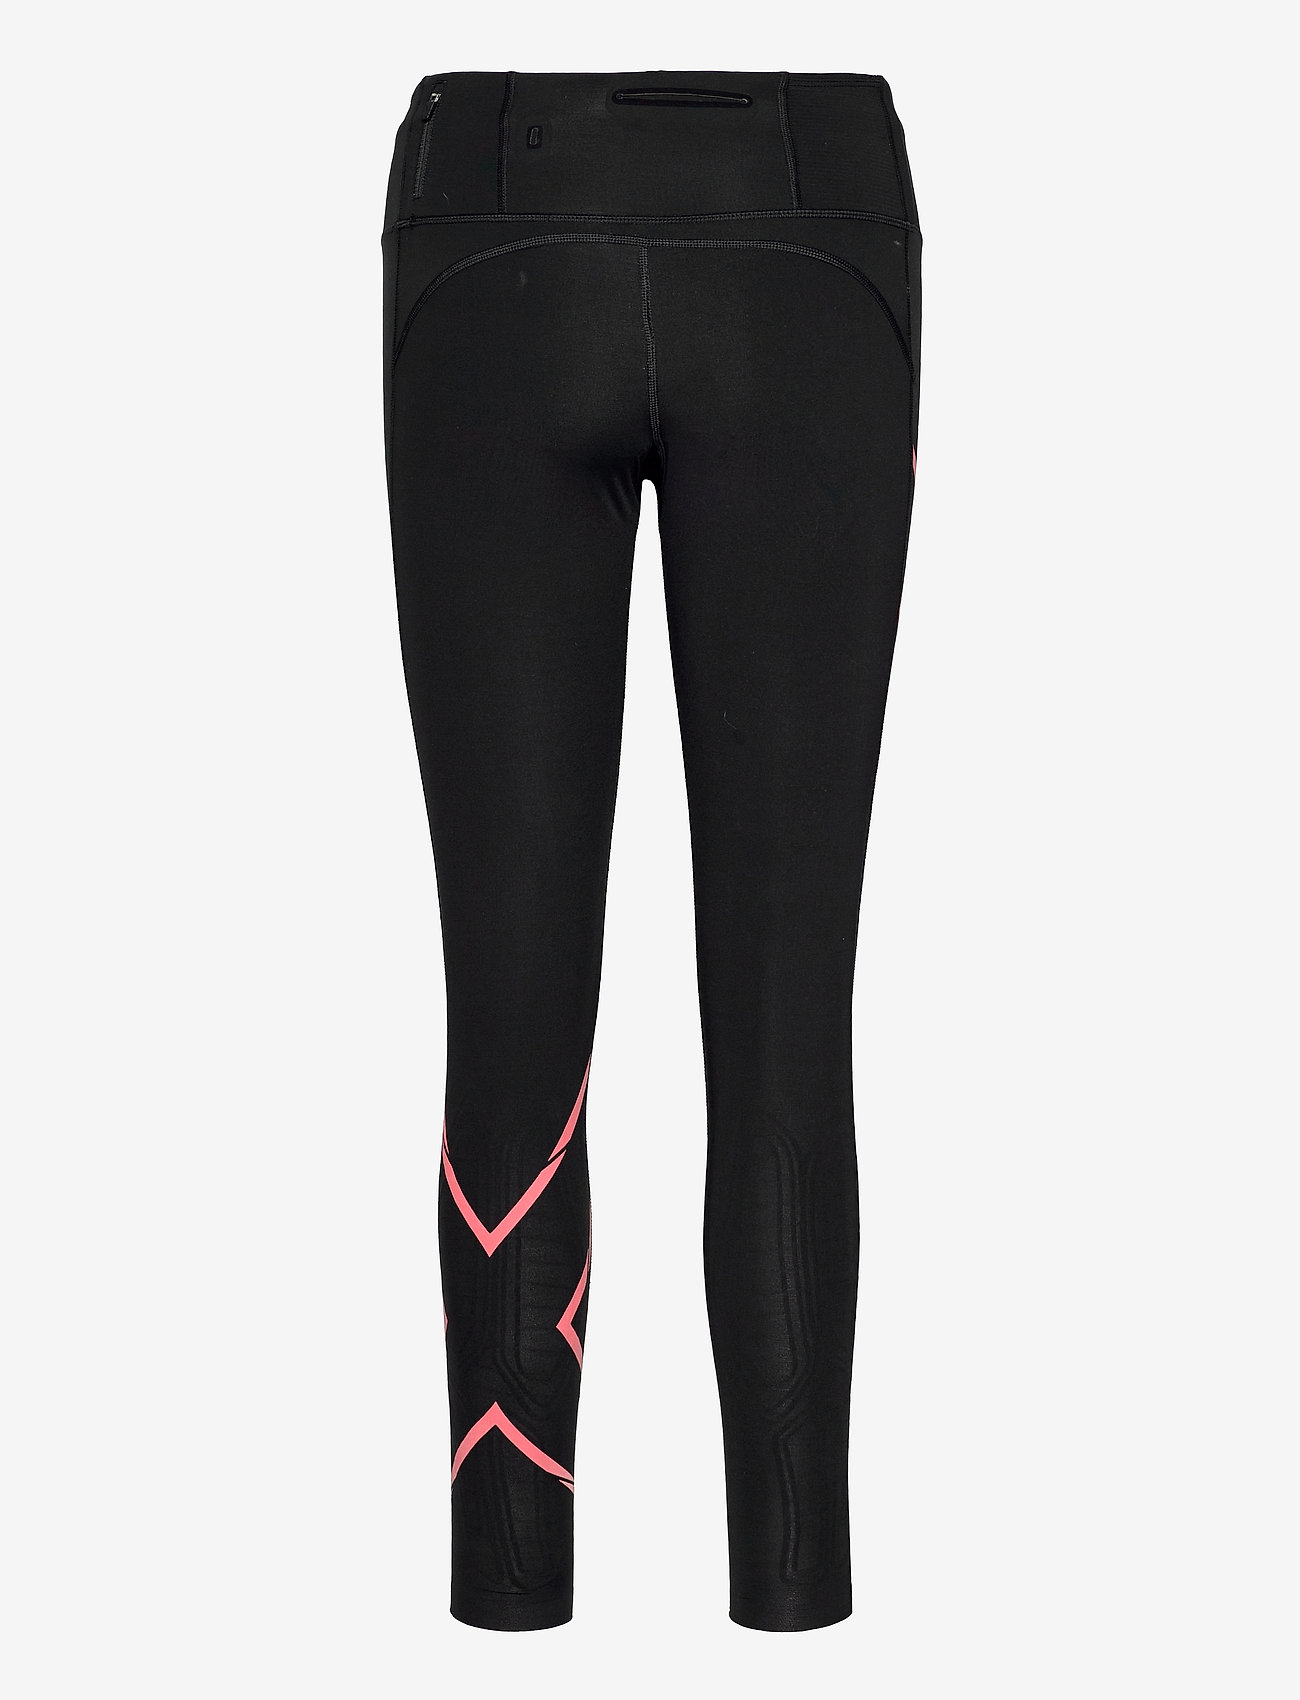 2XU - LIGHT SPEED MID-RISE COMPRESS - sportleggings - black/cranberry reflective - 1